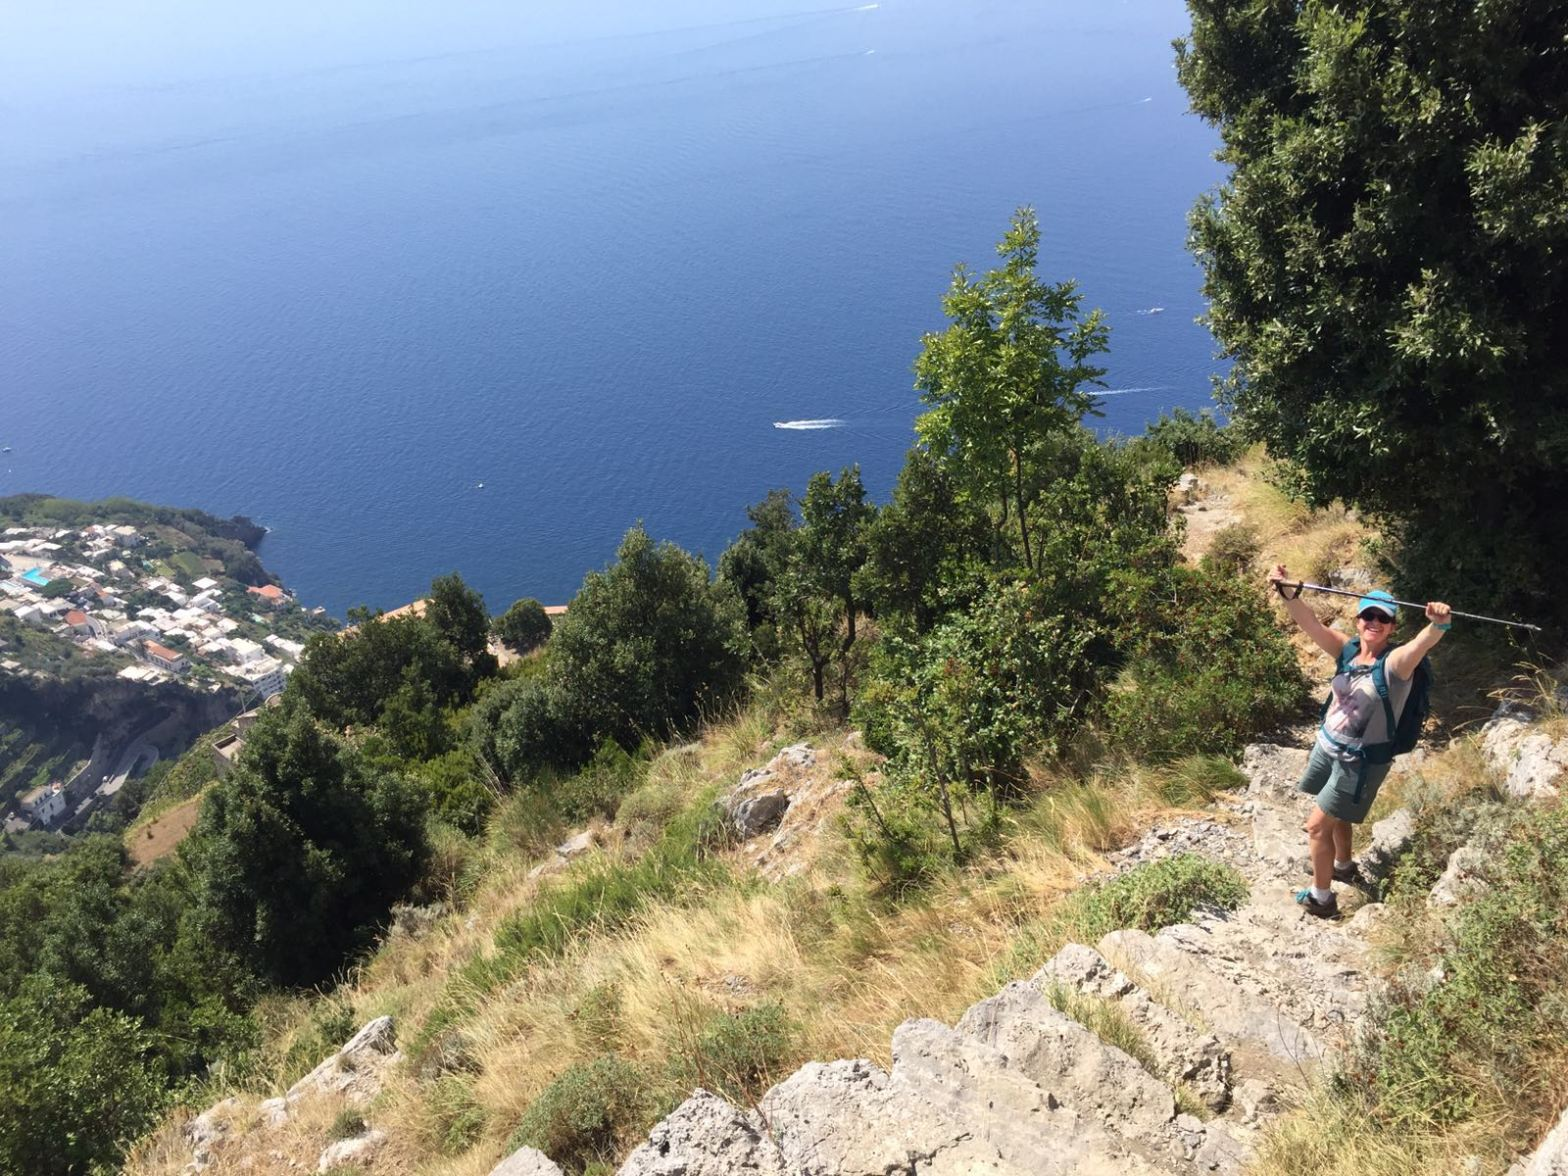 Exploring a new career path with Perspective Hive... (photo taken on the Walk of the Gods, Positano, Italy)